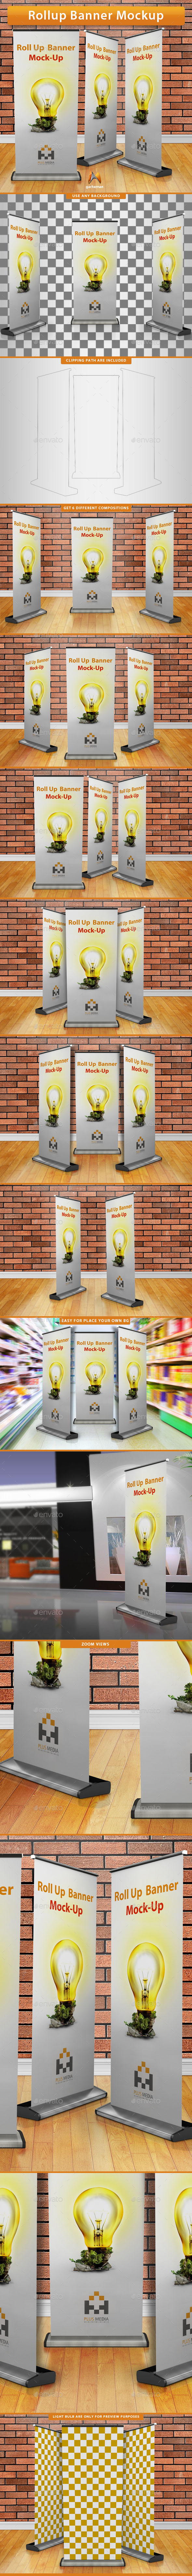 Roll-Up Banner Mockup - Print Product Mock-Ups